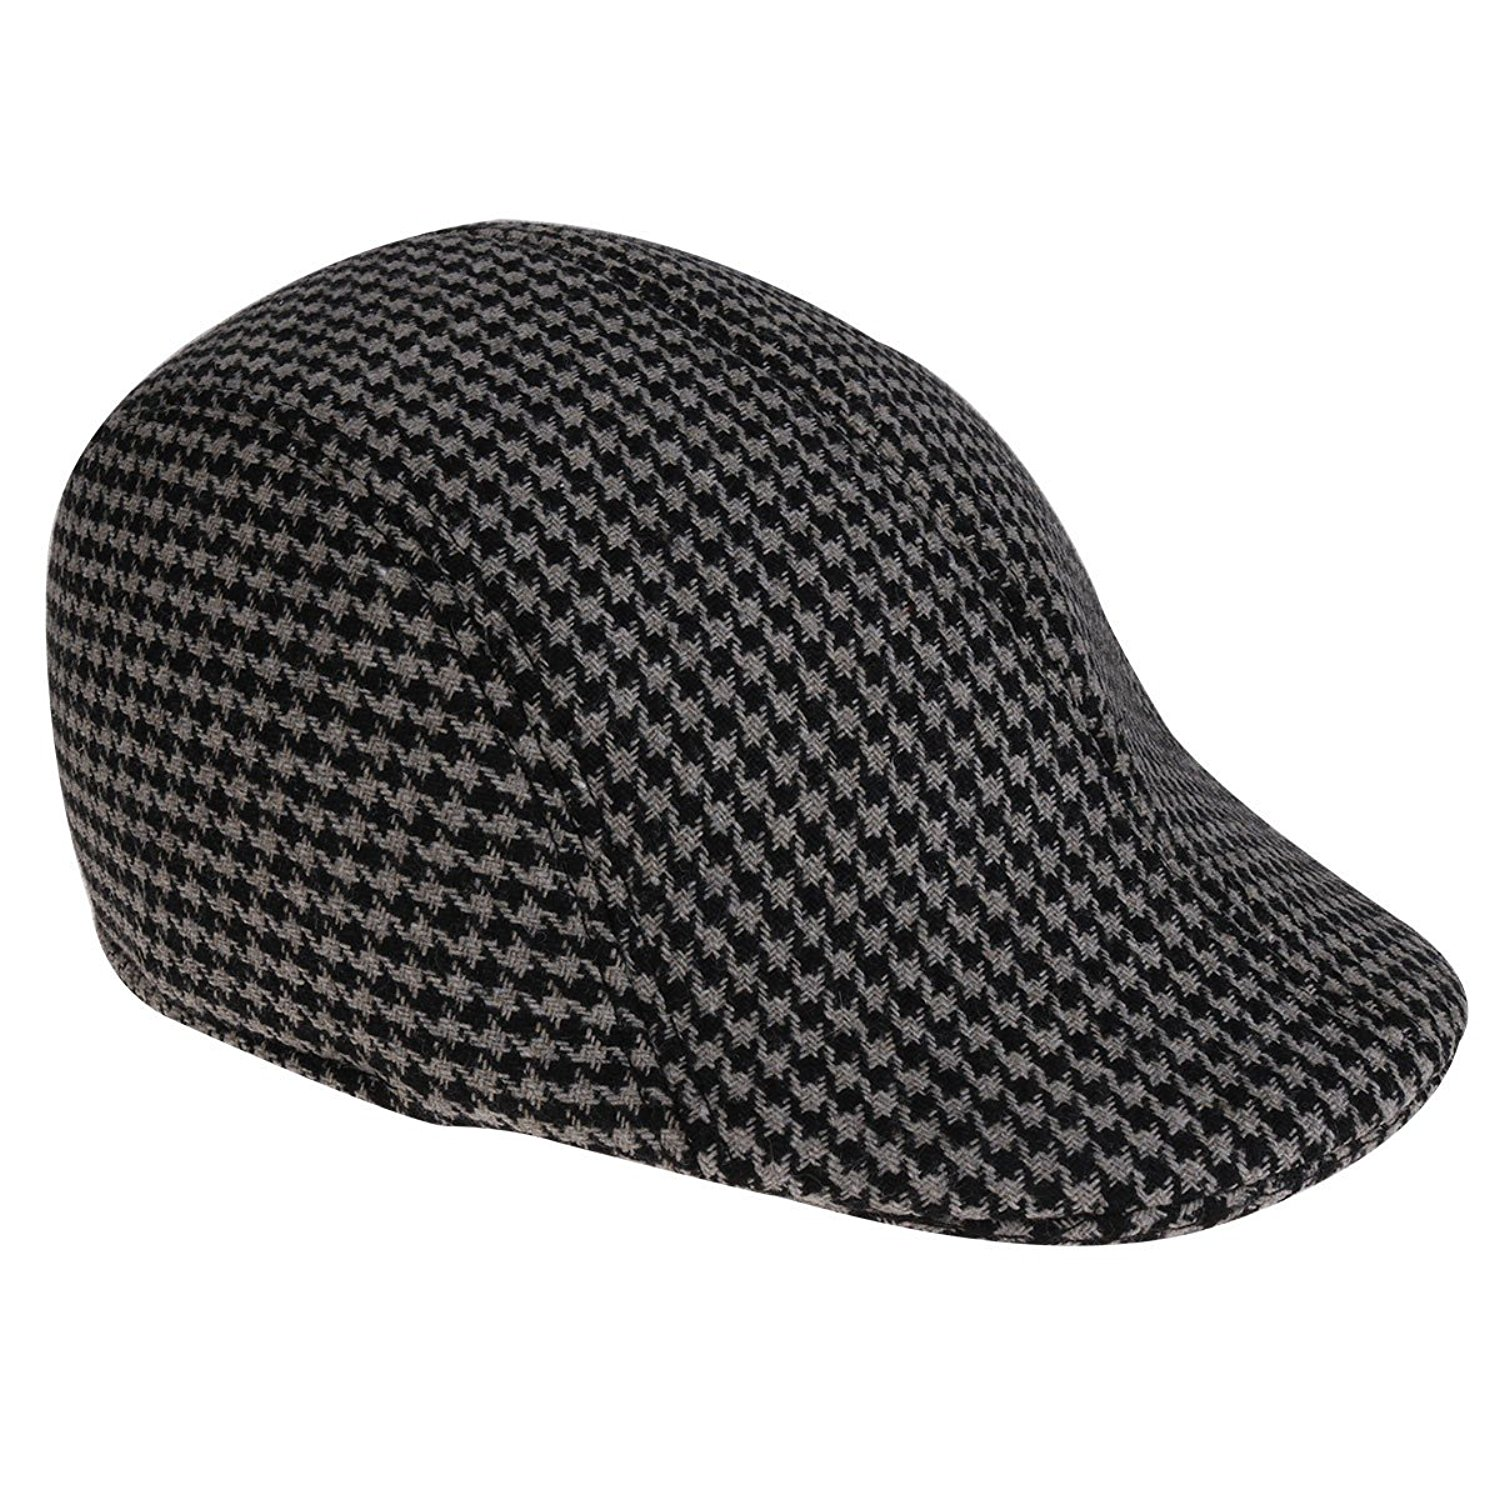 Get Quotations · TiaoBug Men s Cotton Houndstooth Pattern IVY Gatsby  newsboy Flat Cap Hunting Cabbie Hats 0351663a12e8